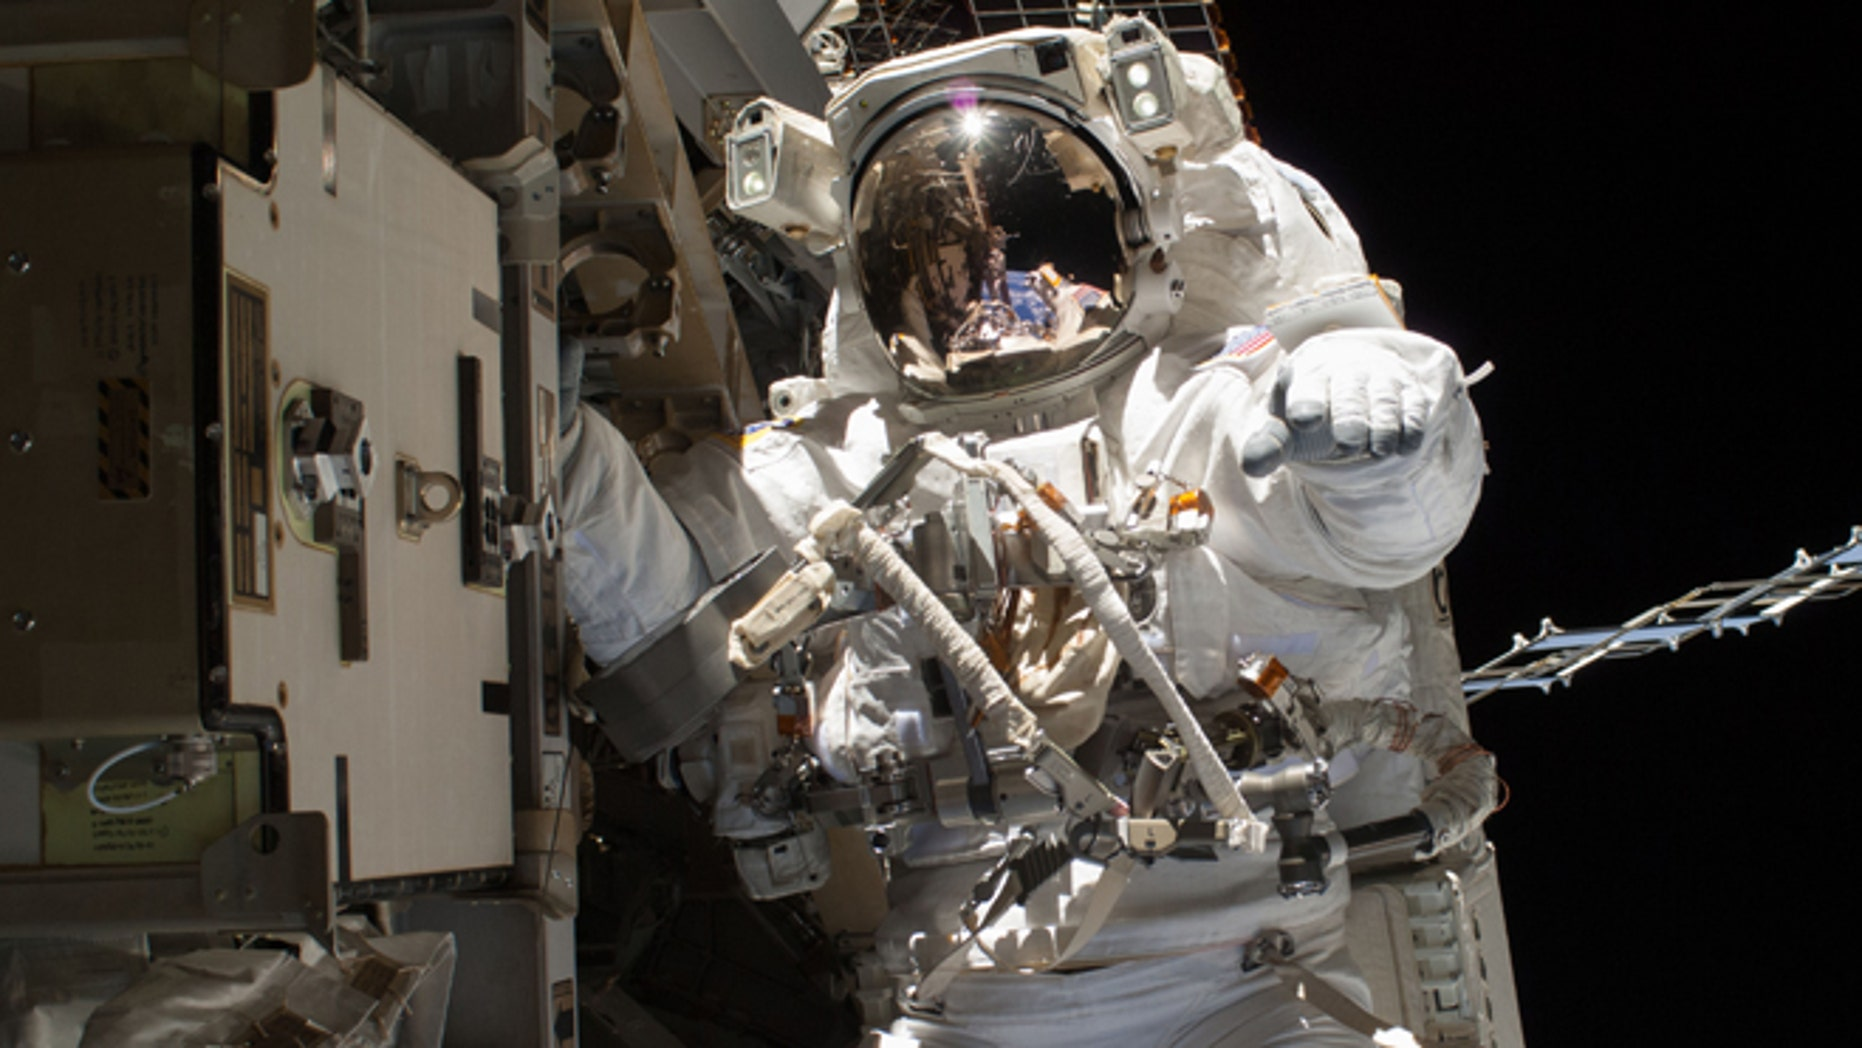 April 22, 2014: In this photo provided by NASA, astronaut Steve Swanson is pictured during a spacewalk to replace a failed backup computer relay box on the International Space Station.